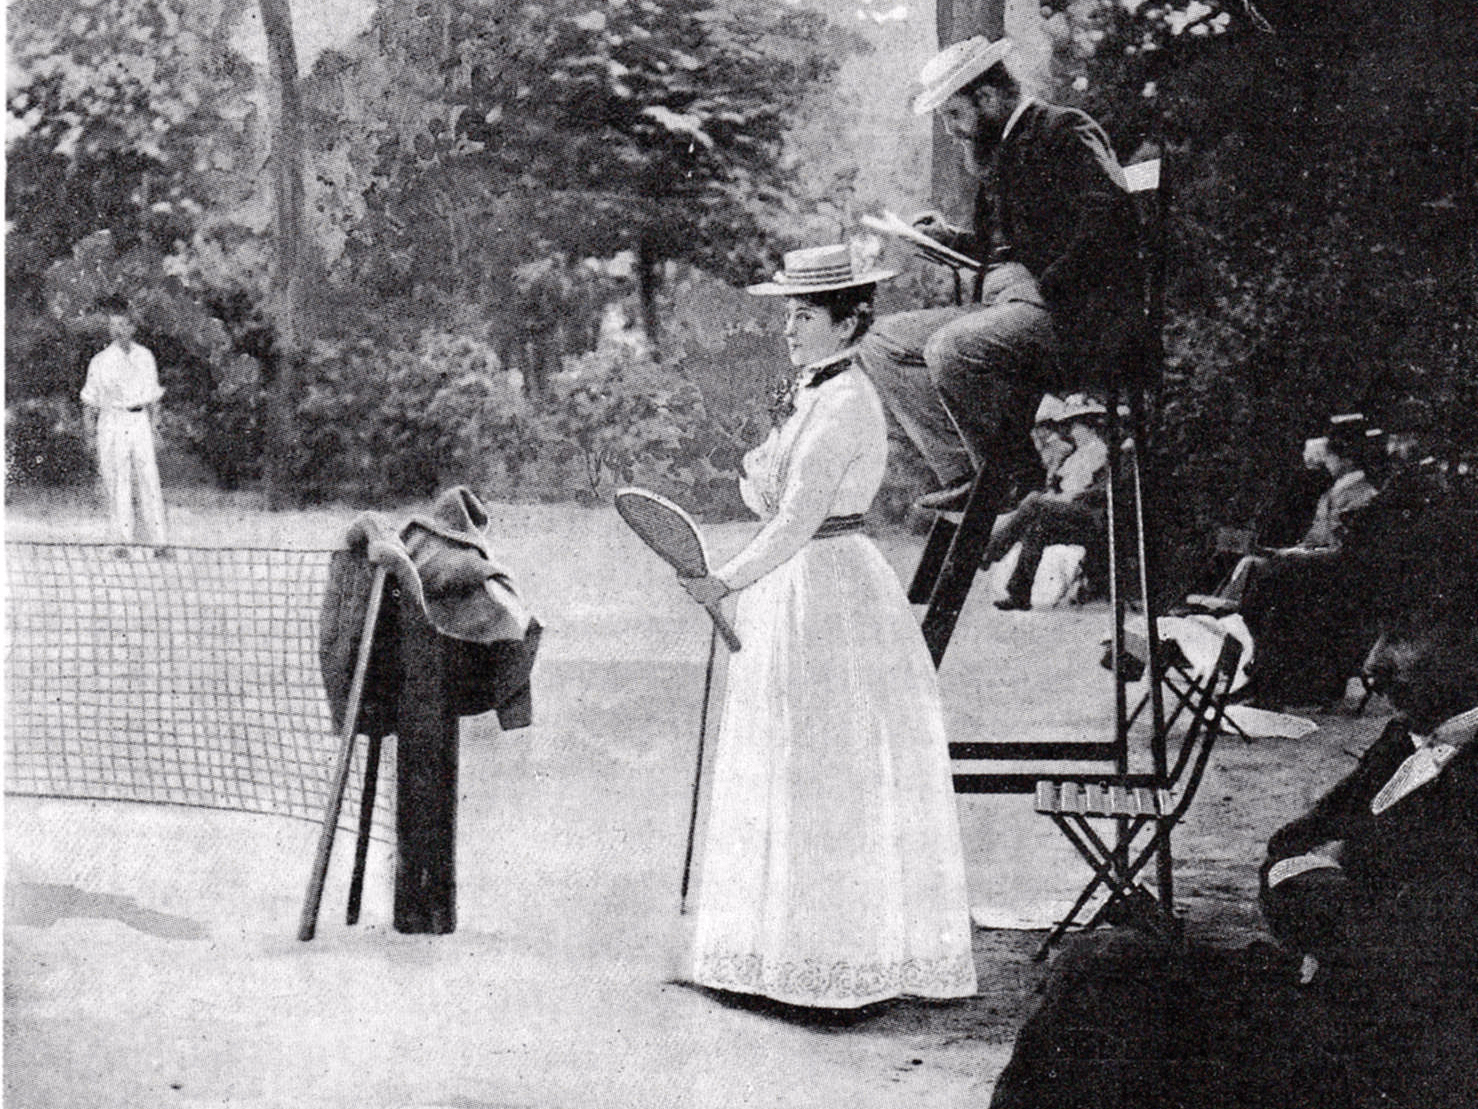 Paris, 1900: This year marked the first in which women were allowed to compete in the Olympic games. Pictured is one of the first female tennis players. Winners of the 1900 Olympics were awarded cups and trophies instead of medals.